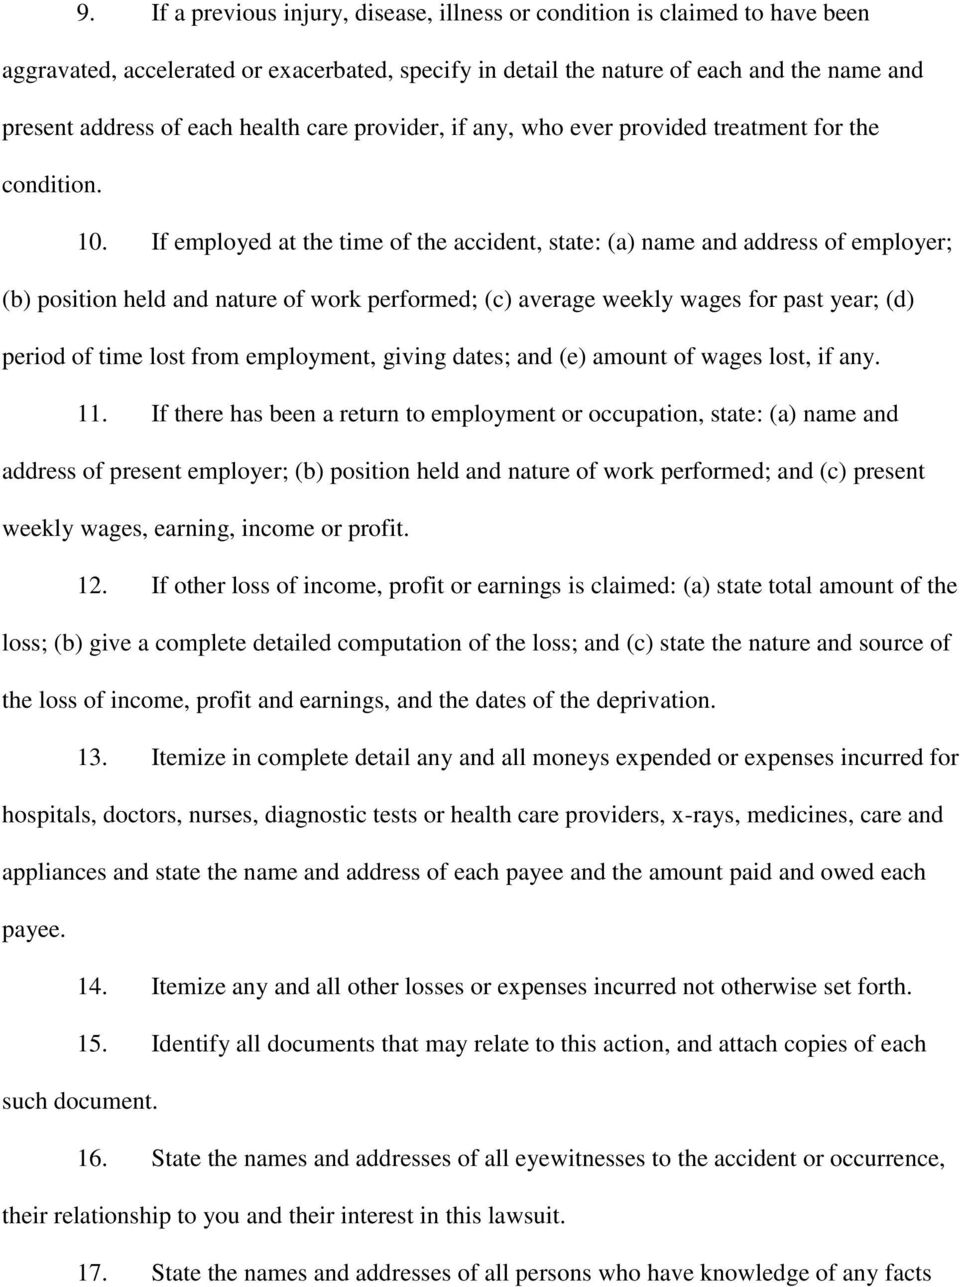 If employed at the time of the accident, state: (a) name and address of employer; (b) position held and nature of work performed; (c) average weekly wages for past year; (d) period of time lost from